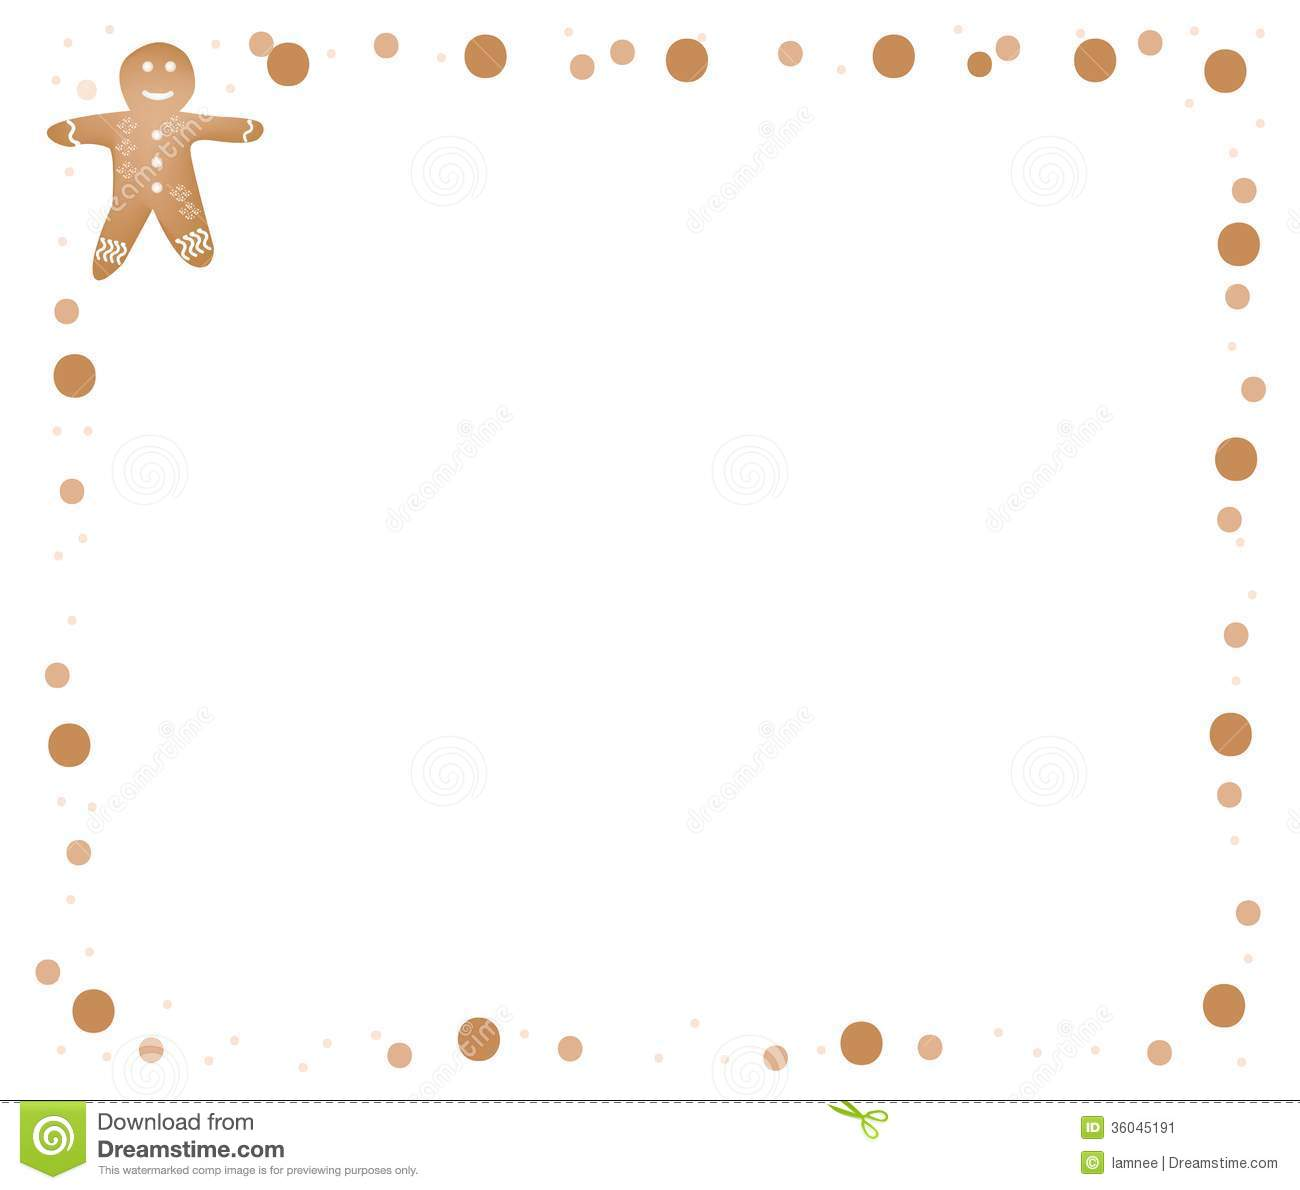 Gingerbread Man Border Clipart Clipart Suggest